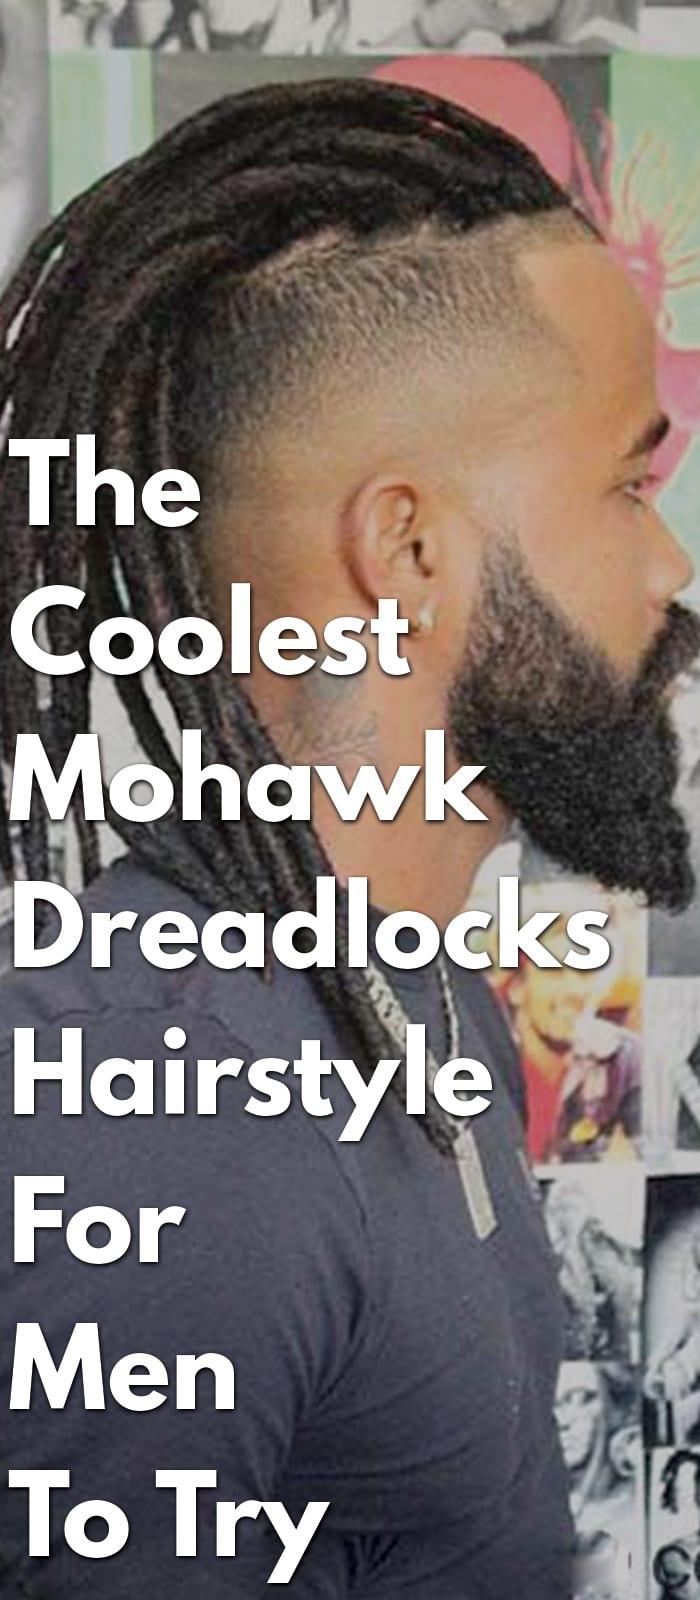 The Coolest Mohawk Dreadlocks Hairstyle